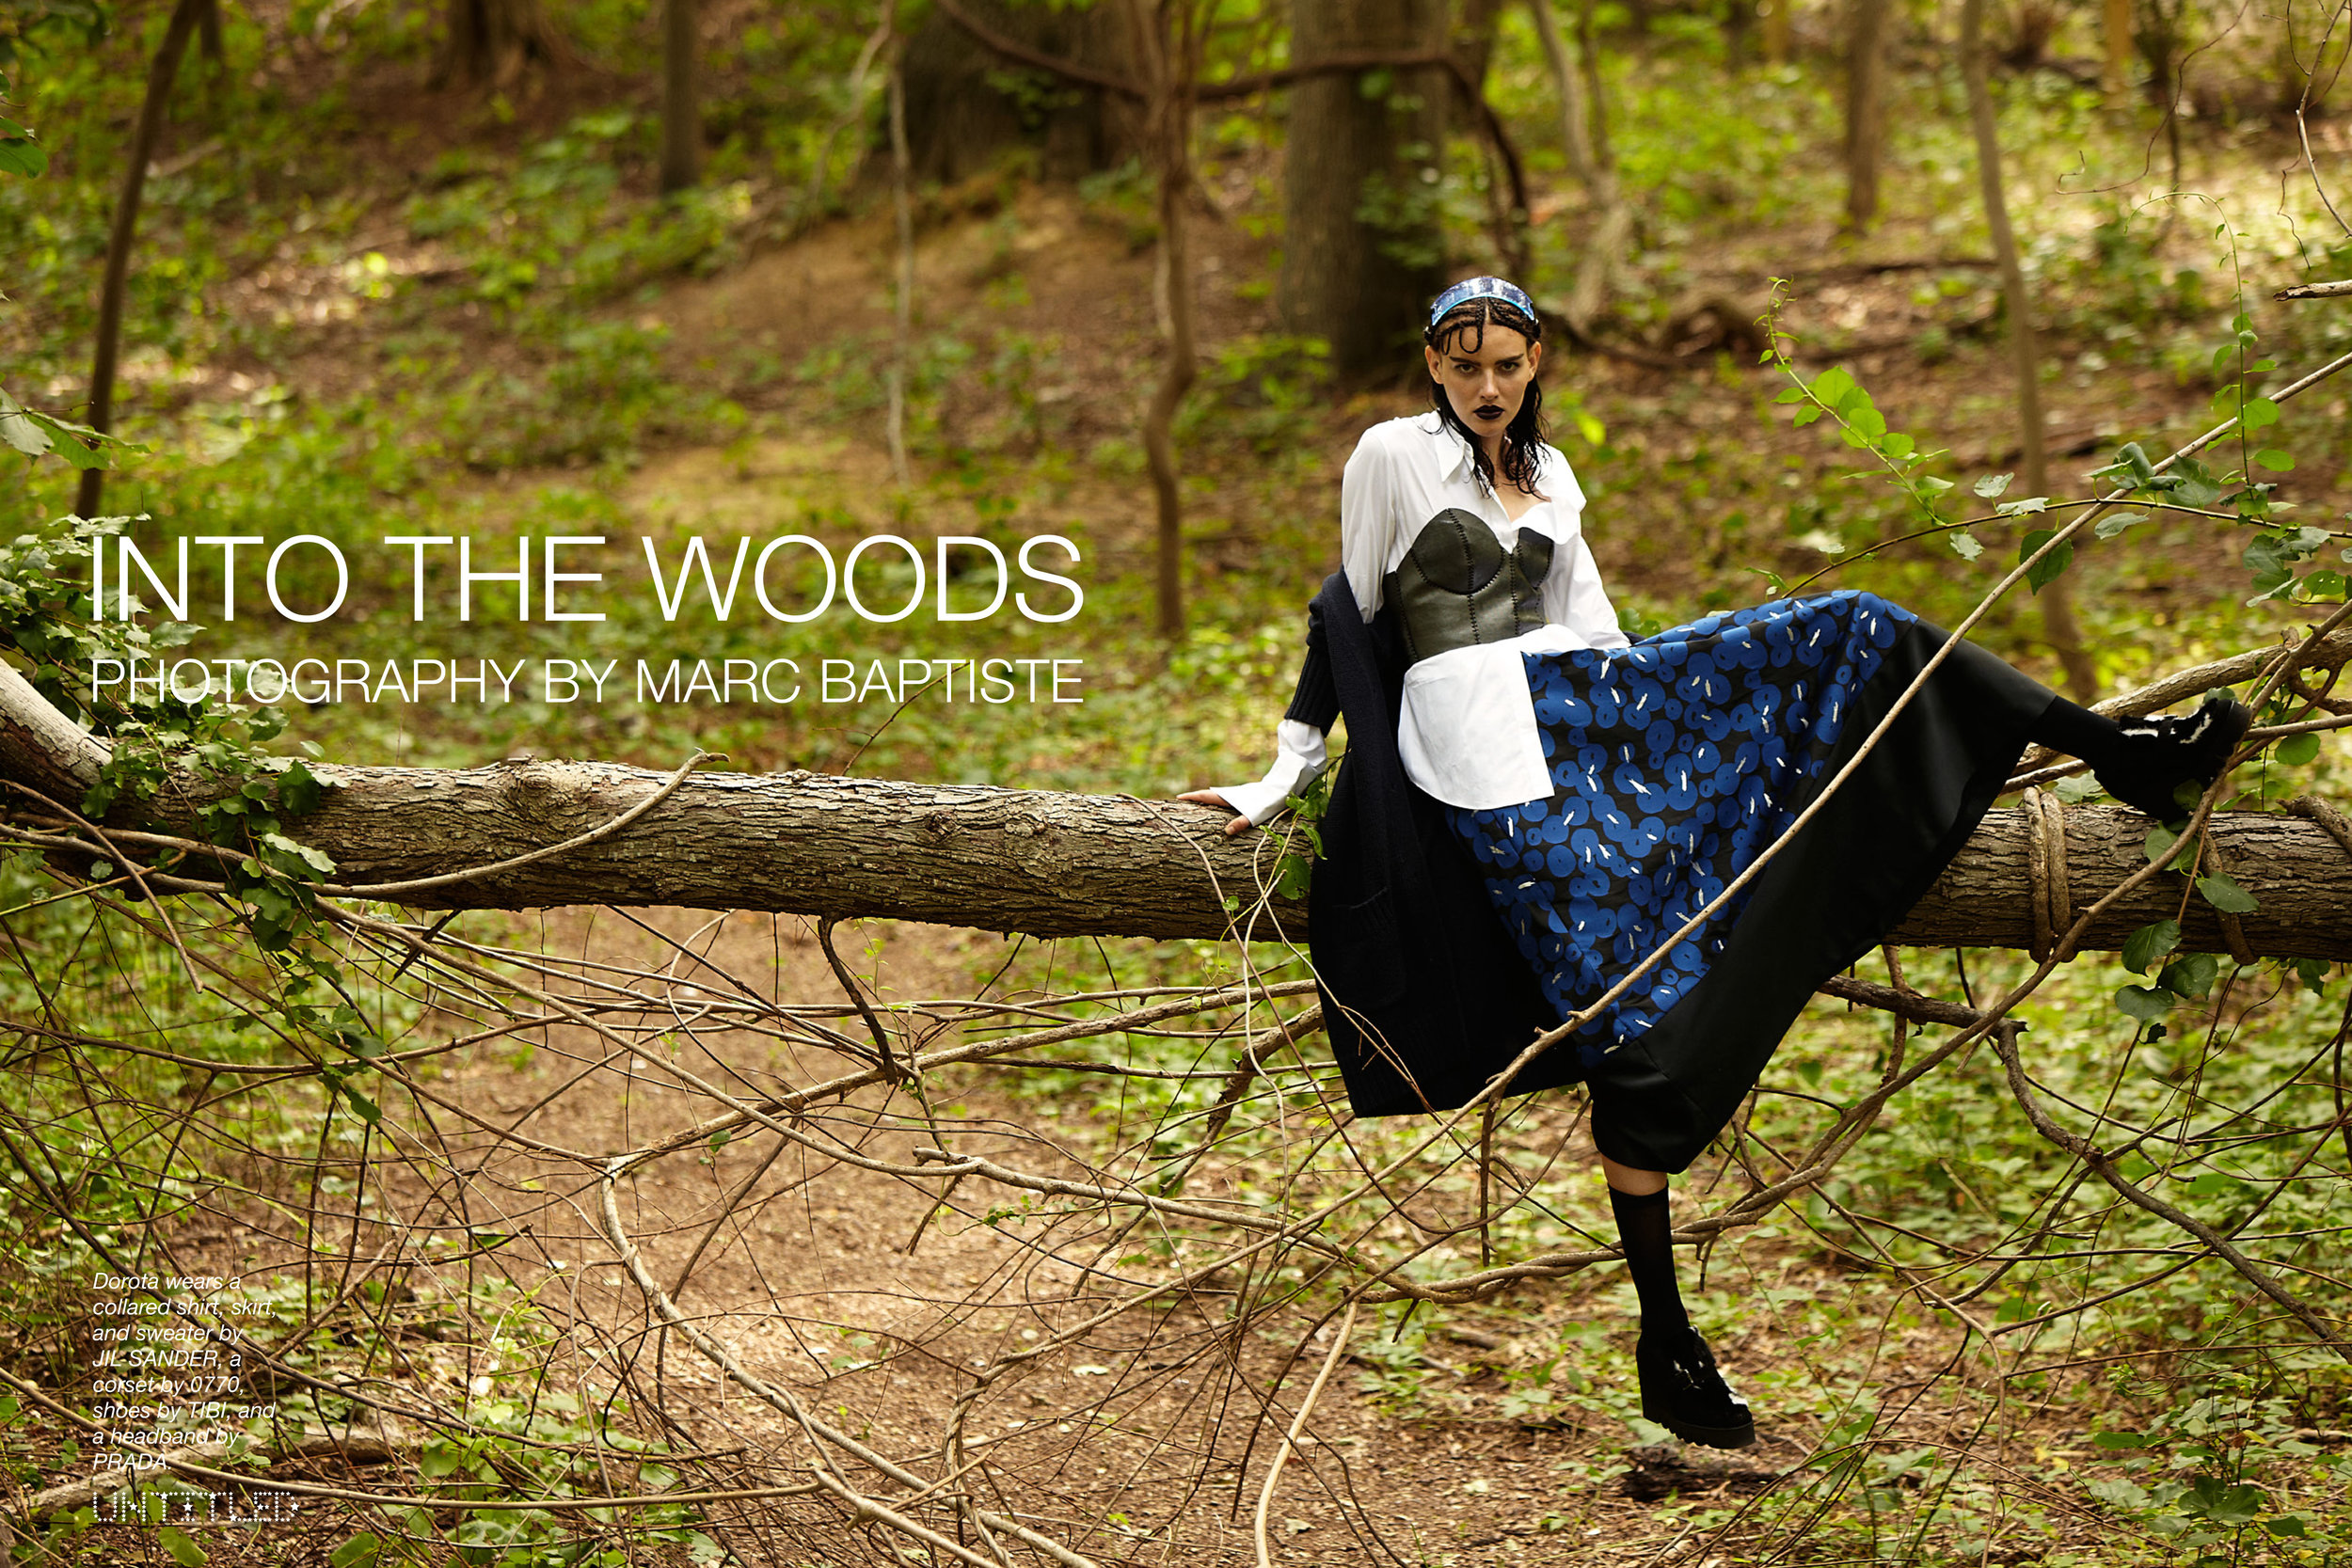 INTO+THE+WOODS+-+Photography+by+Marc+Baptiste+for+The+Untitled+Magazine-1.jpg